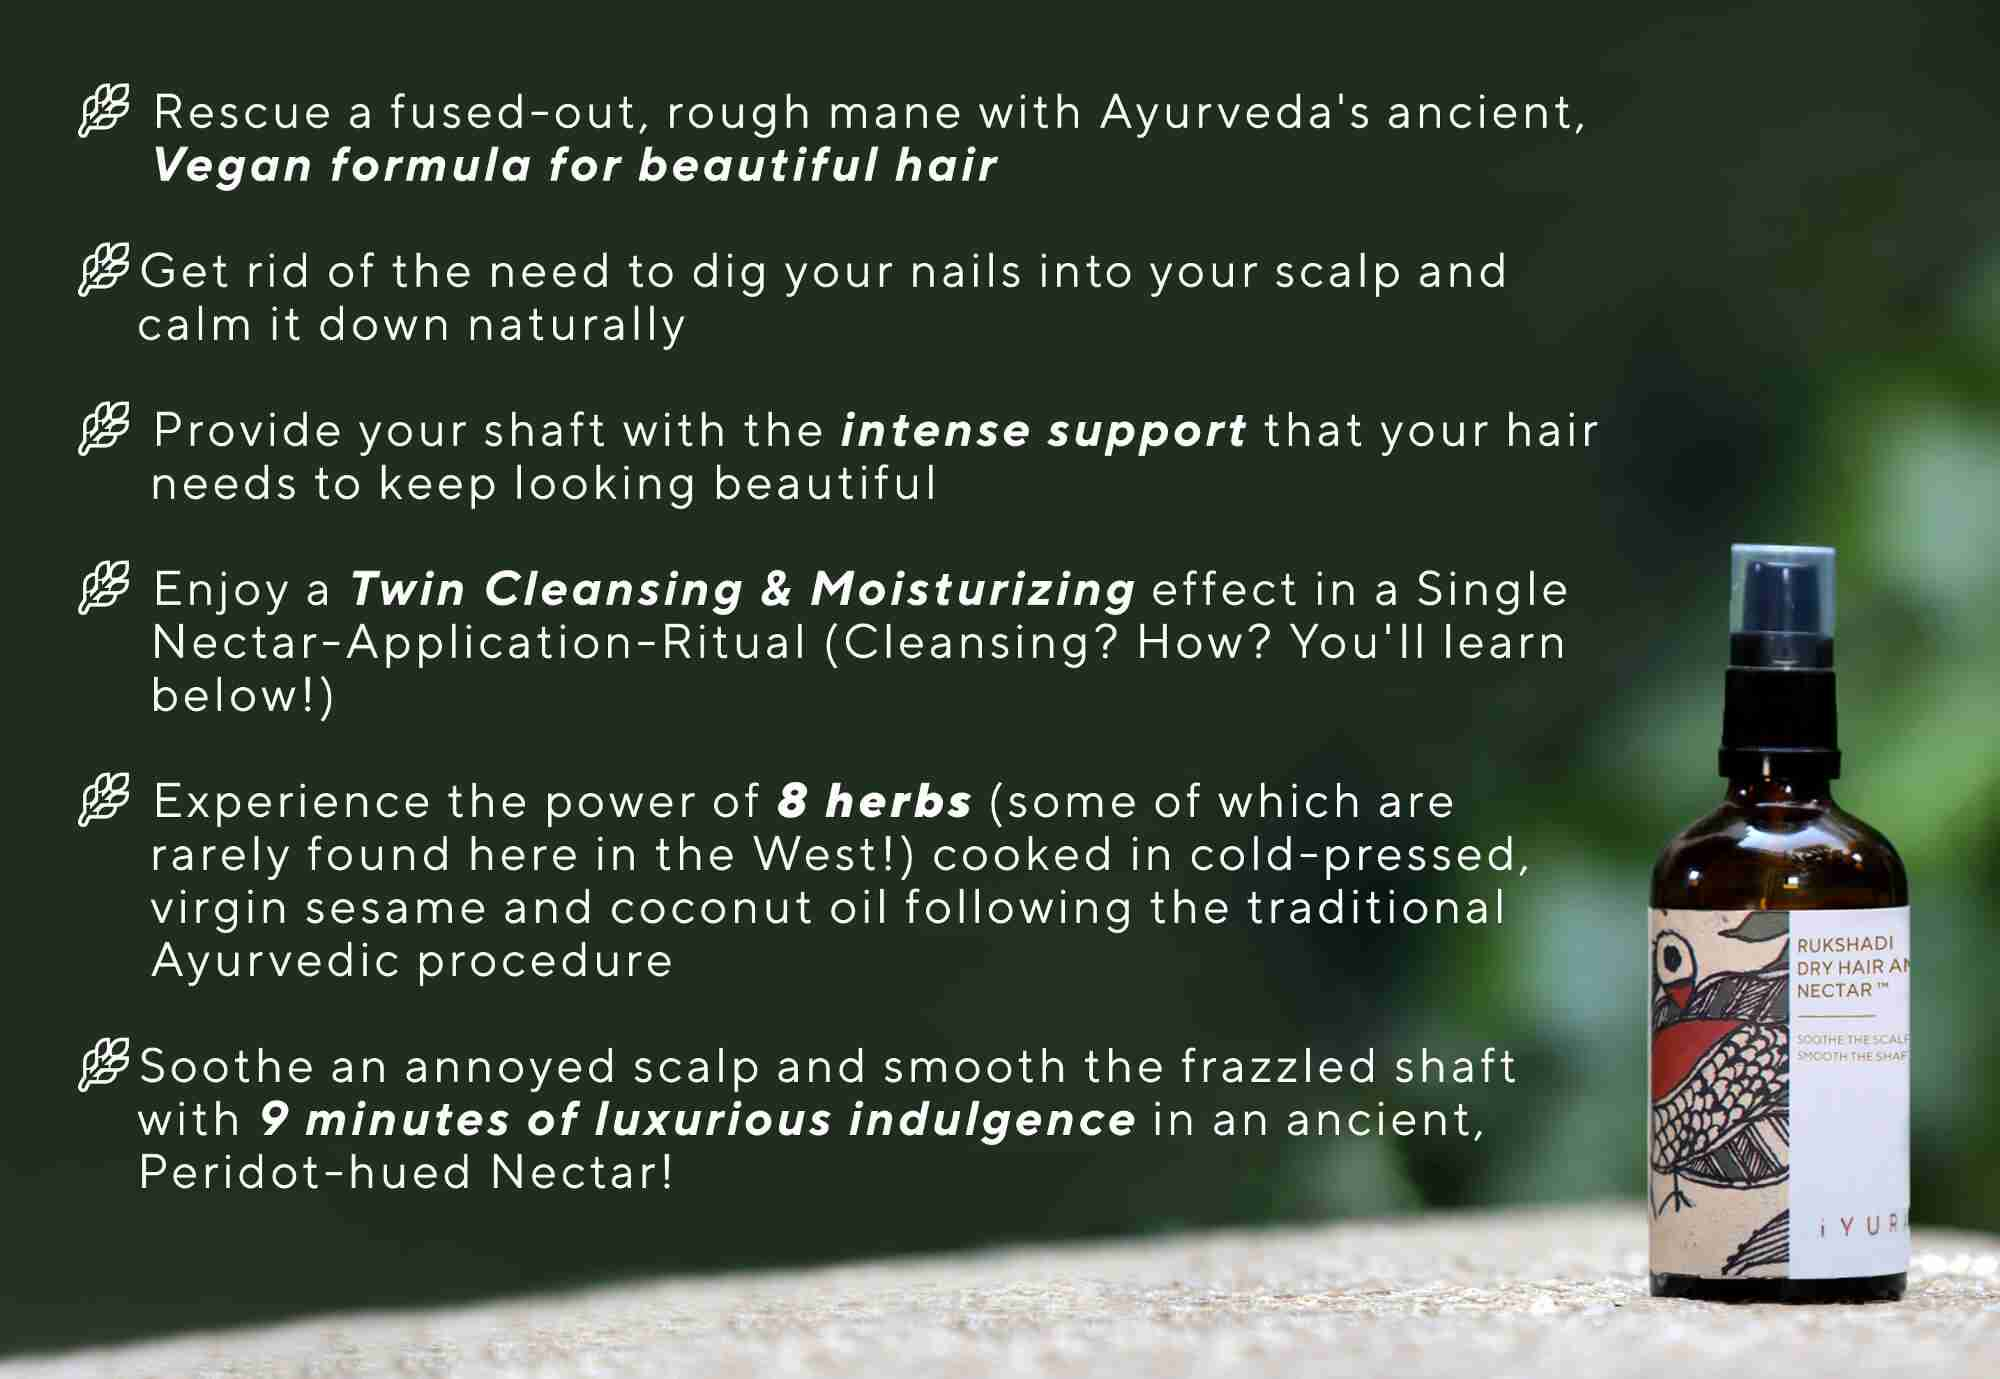 iYURA Rukshadi Dry Hair & Scalp Nectar is Ayurveda's Vegan formula to give you moisture-drenched, clean-looking scalp and beautiful hair overall.